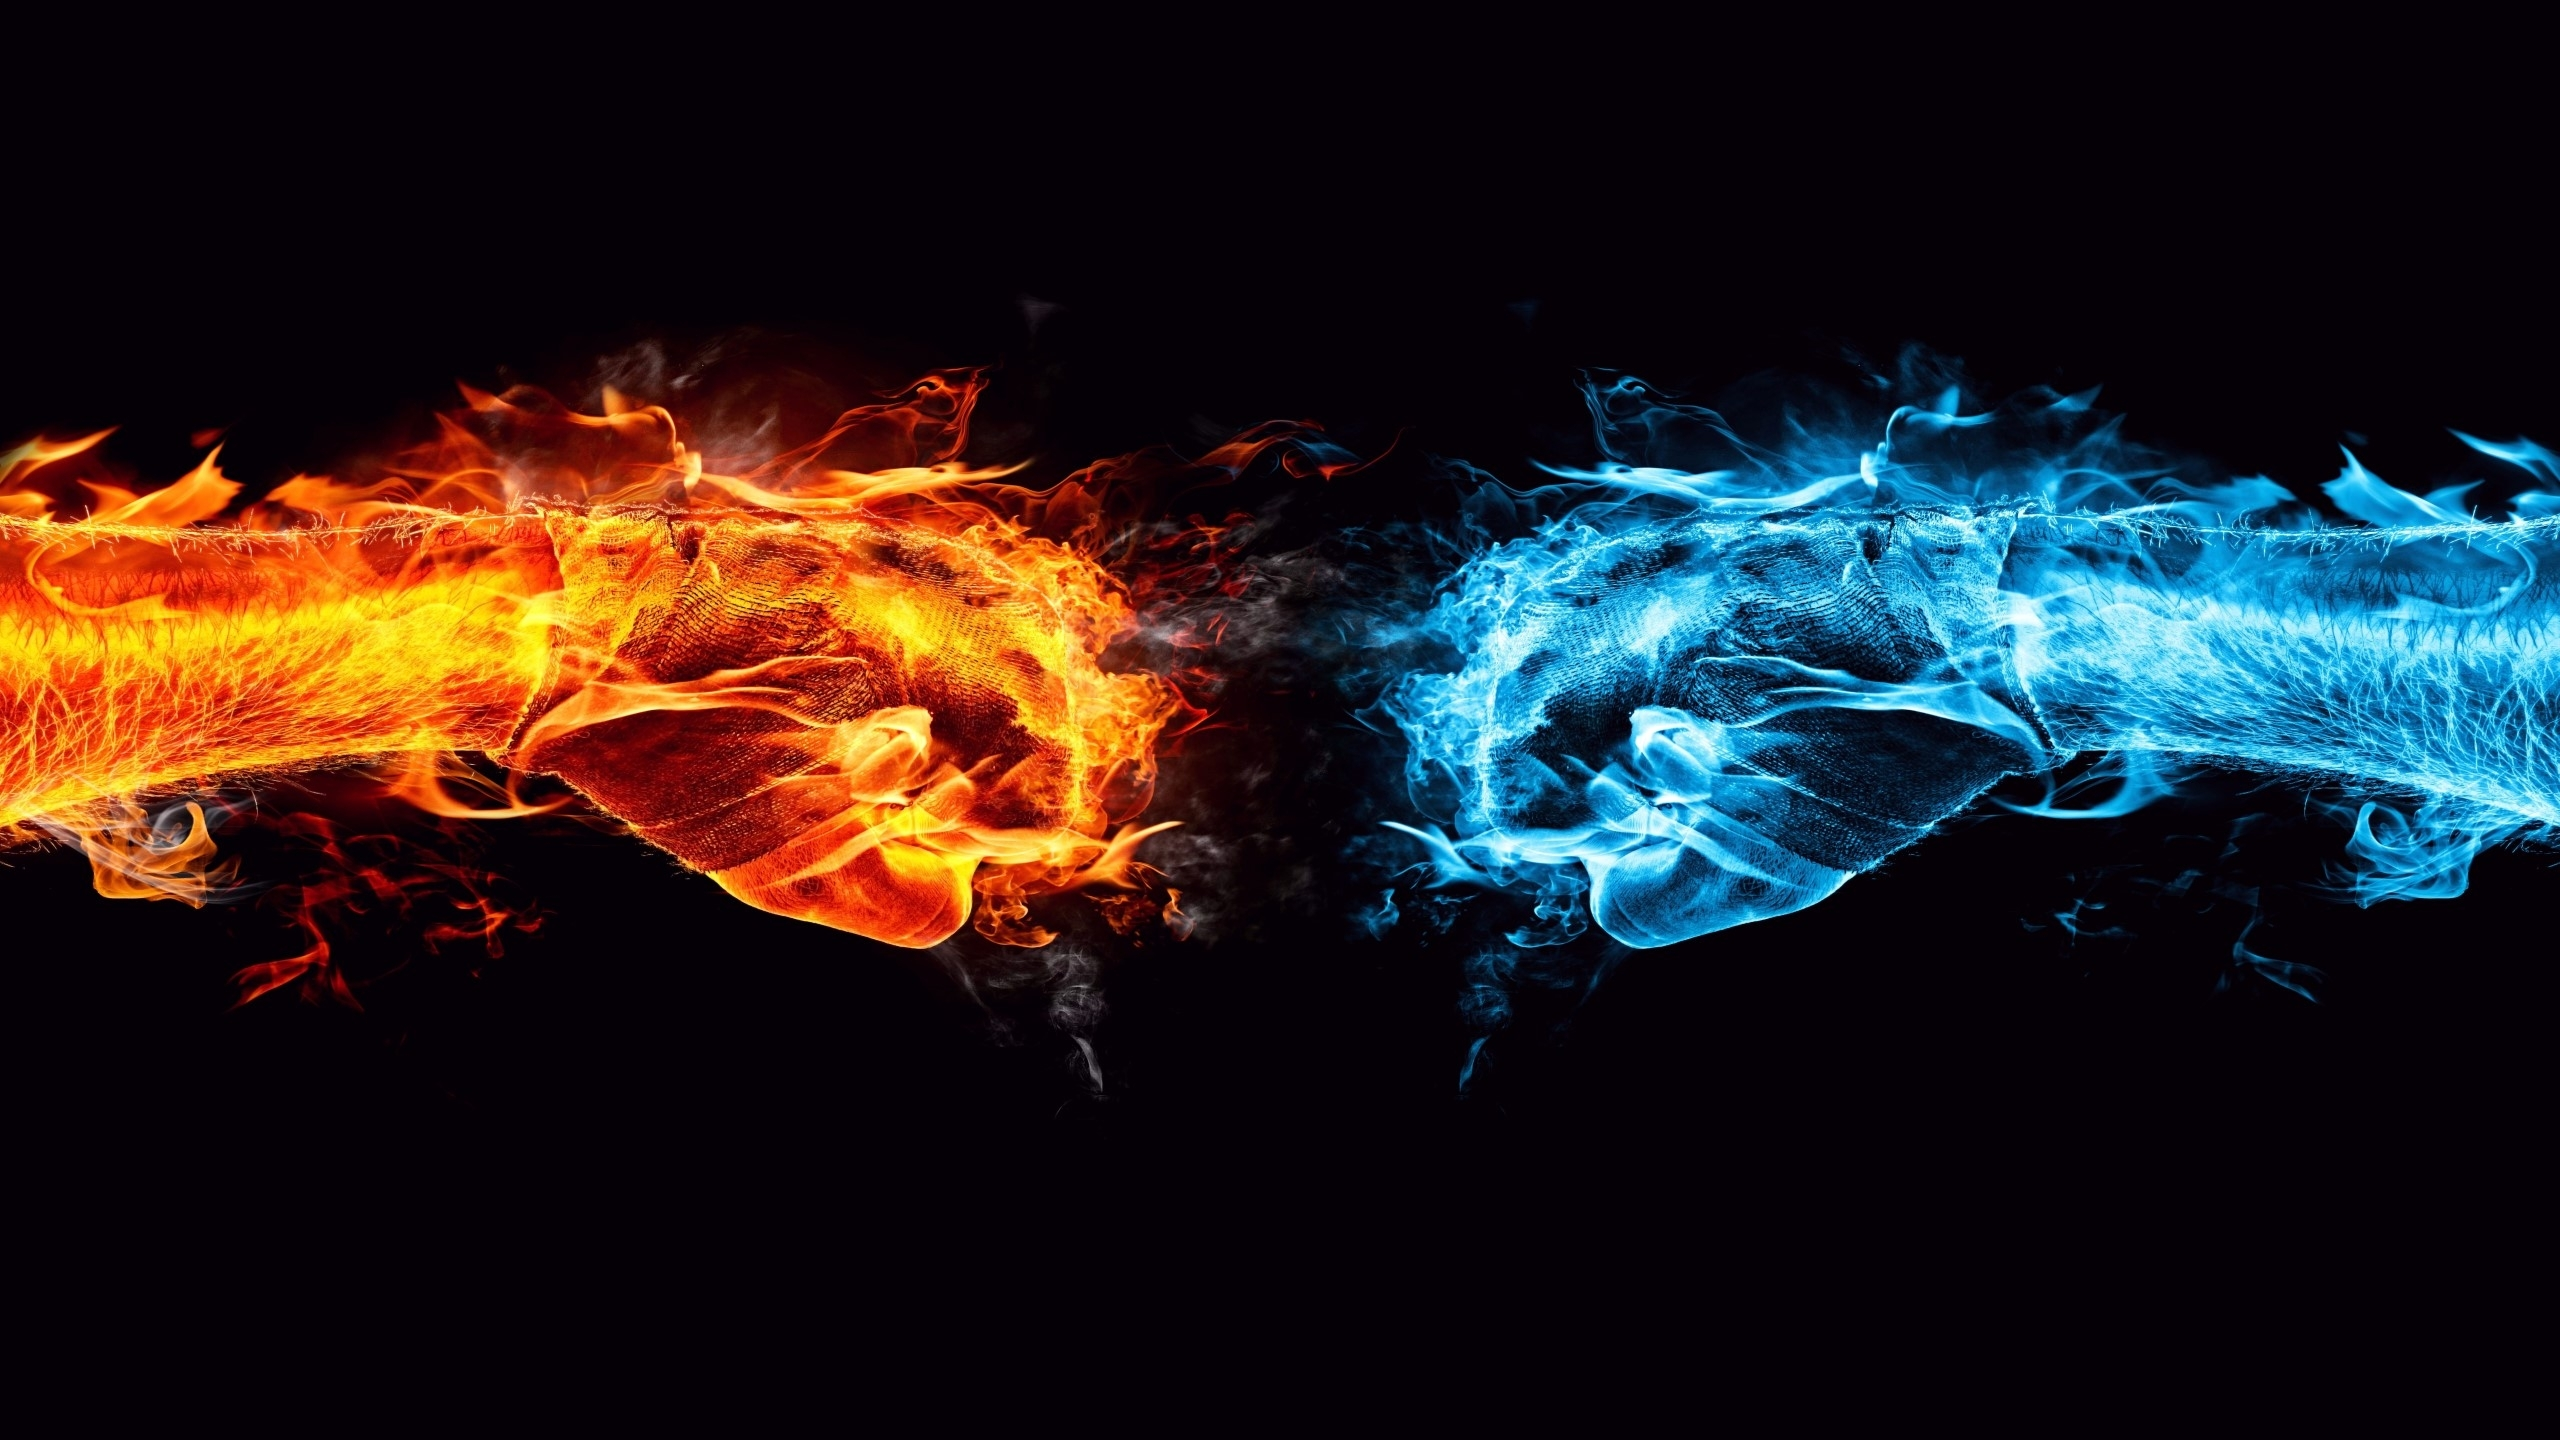 fire and ice fist wallpapers | wallpapers hd